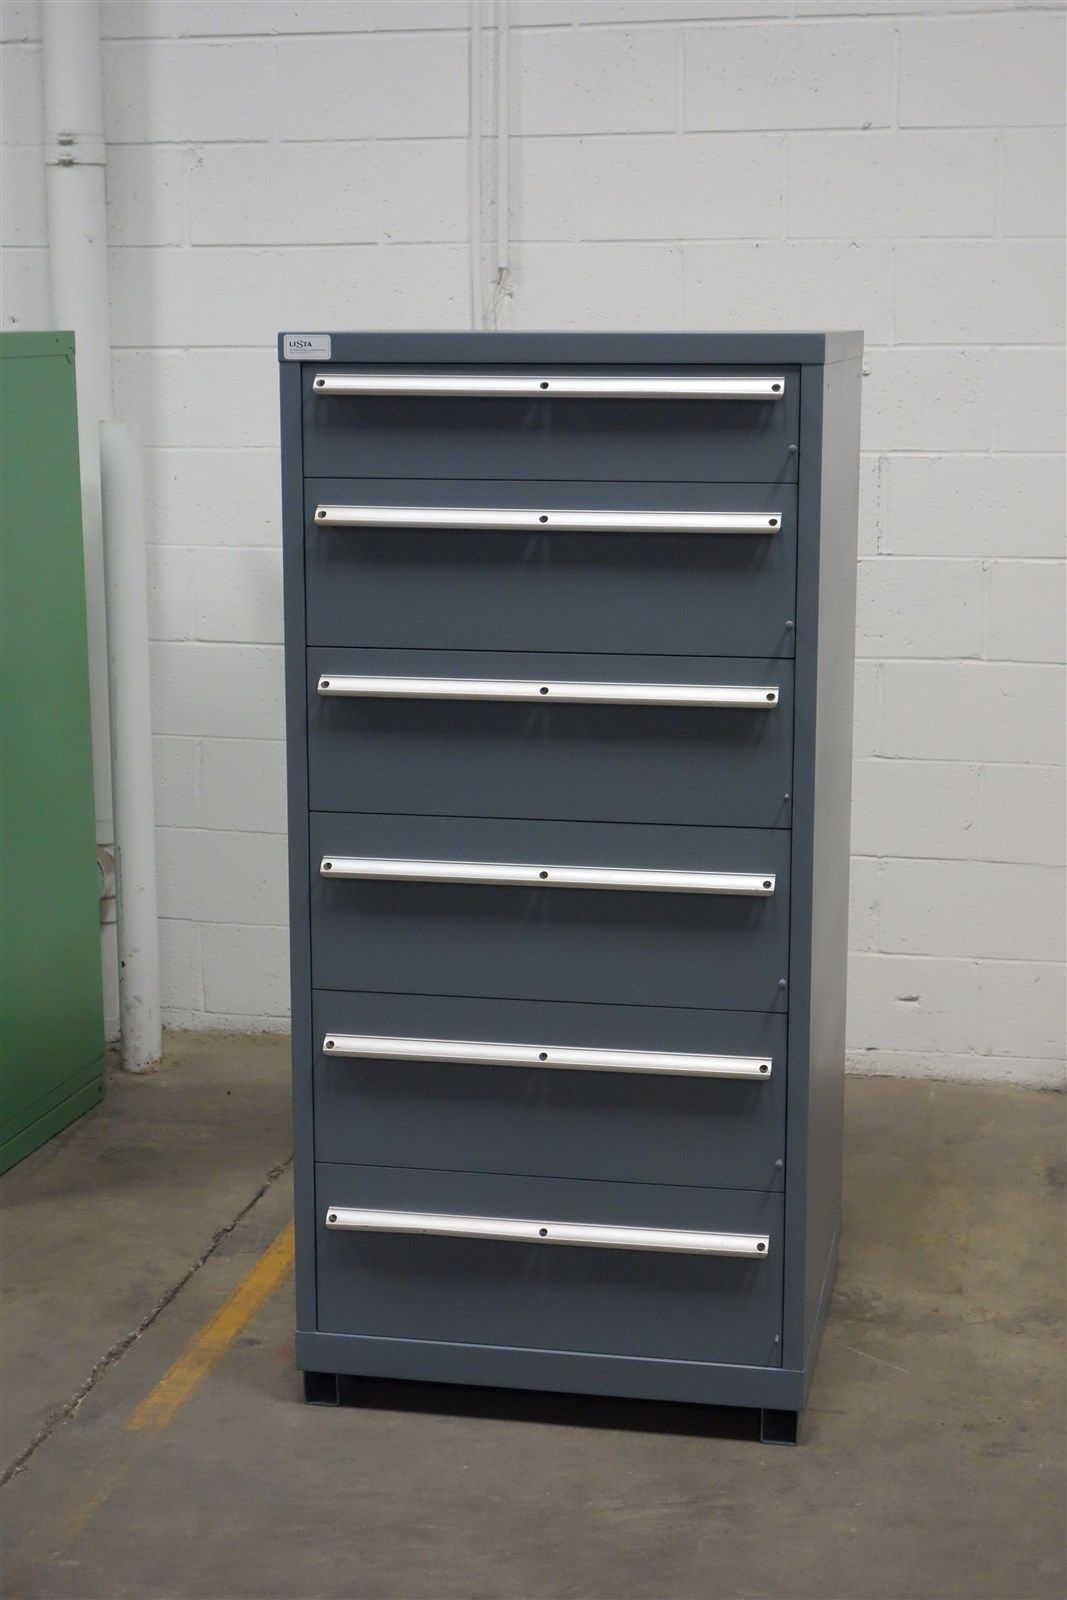 Used Lista 6 drawer cabinet industrial tool parts storage